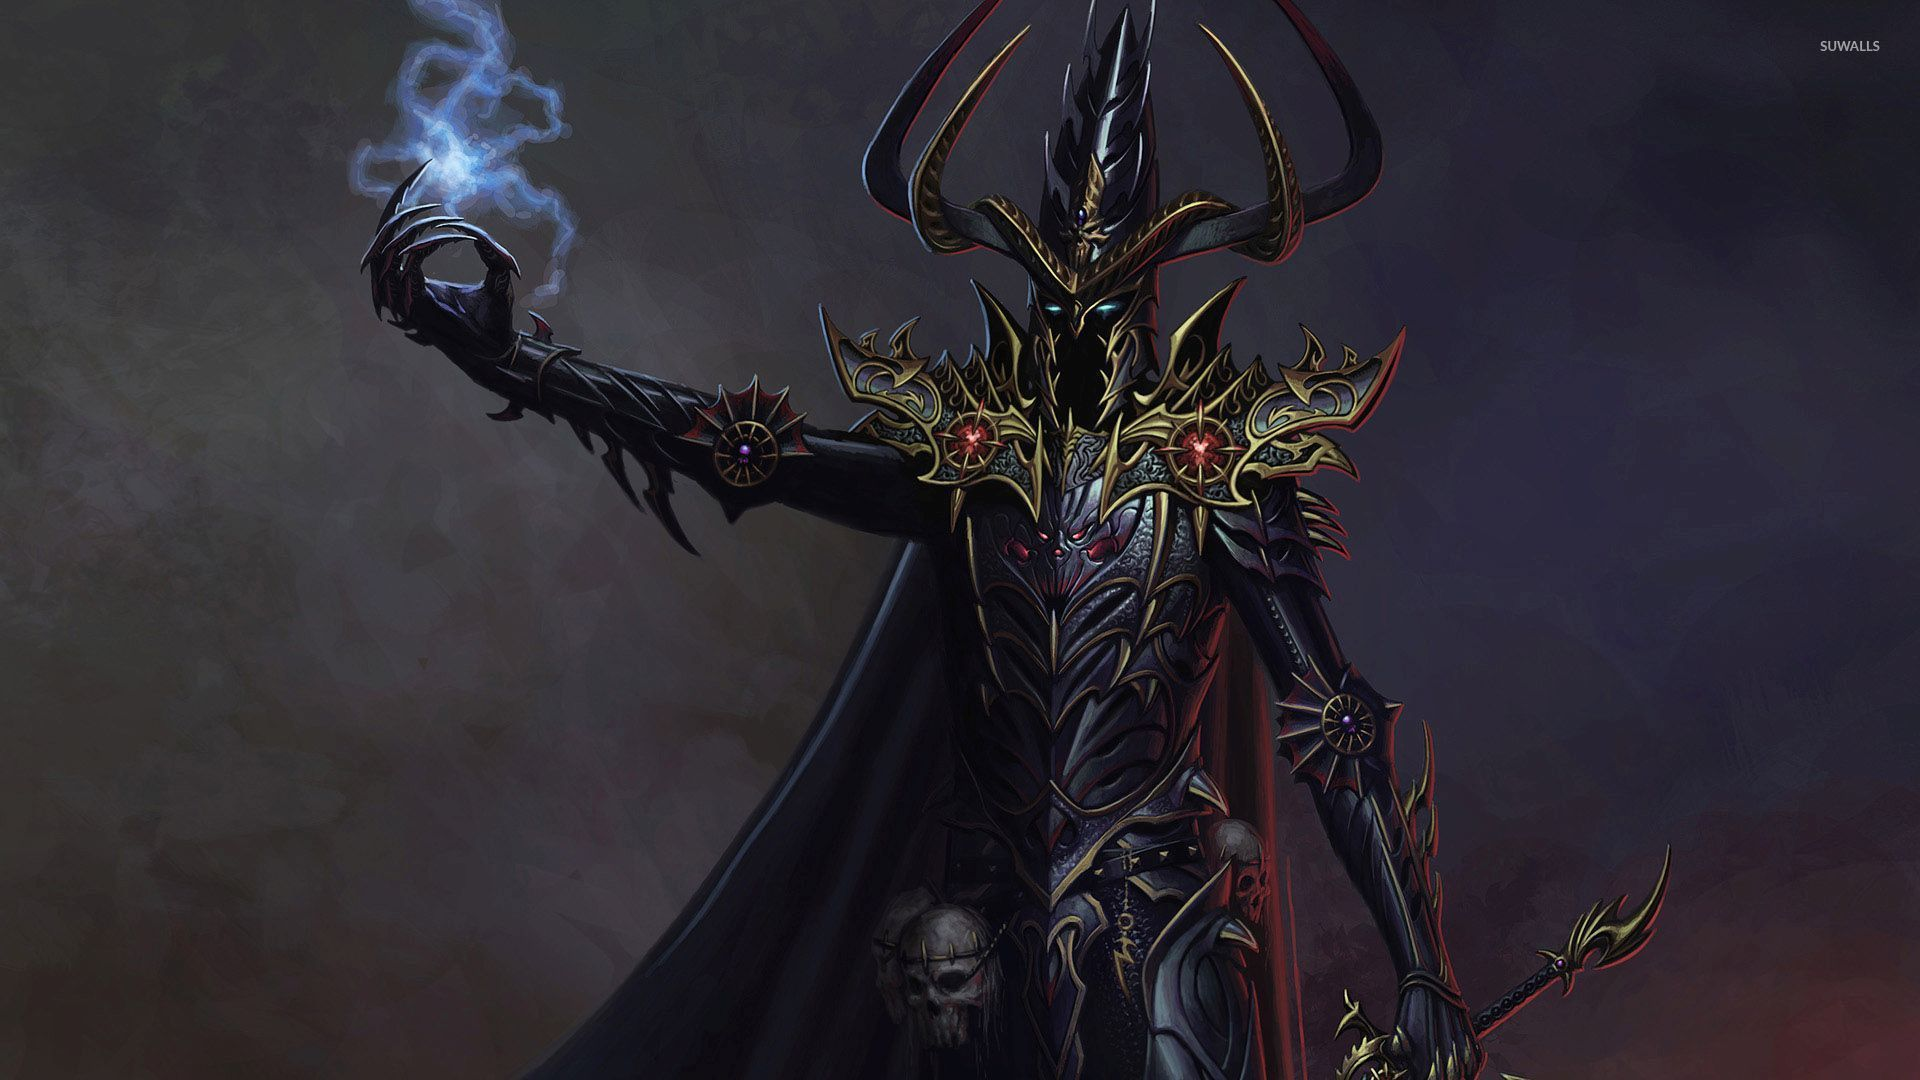 Dark Elf from Warhammer wallpaper   Game wallpapers   52453 1920x1080